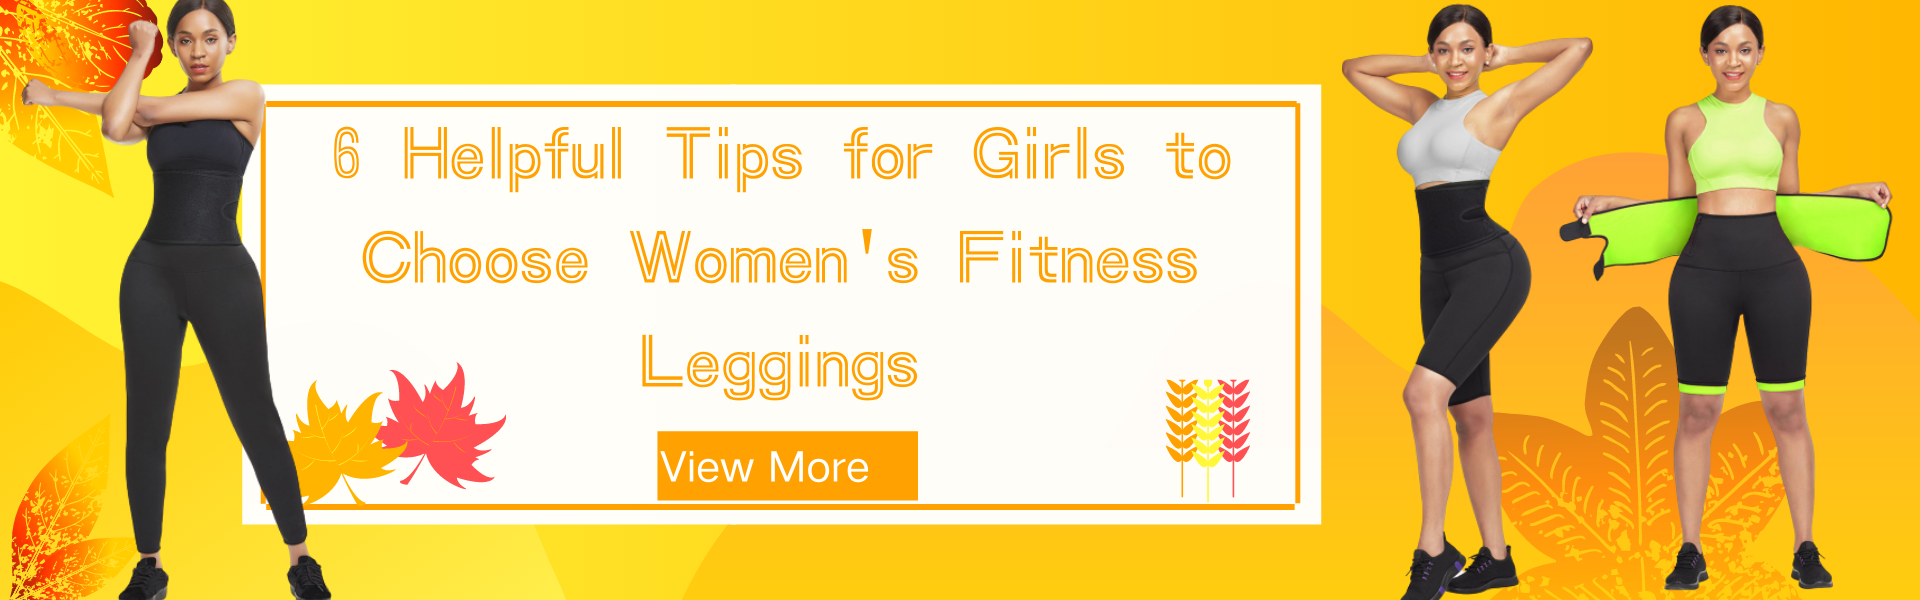 6 Helpful Tips for Girls to Choose Women's Fitness Leggings